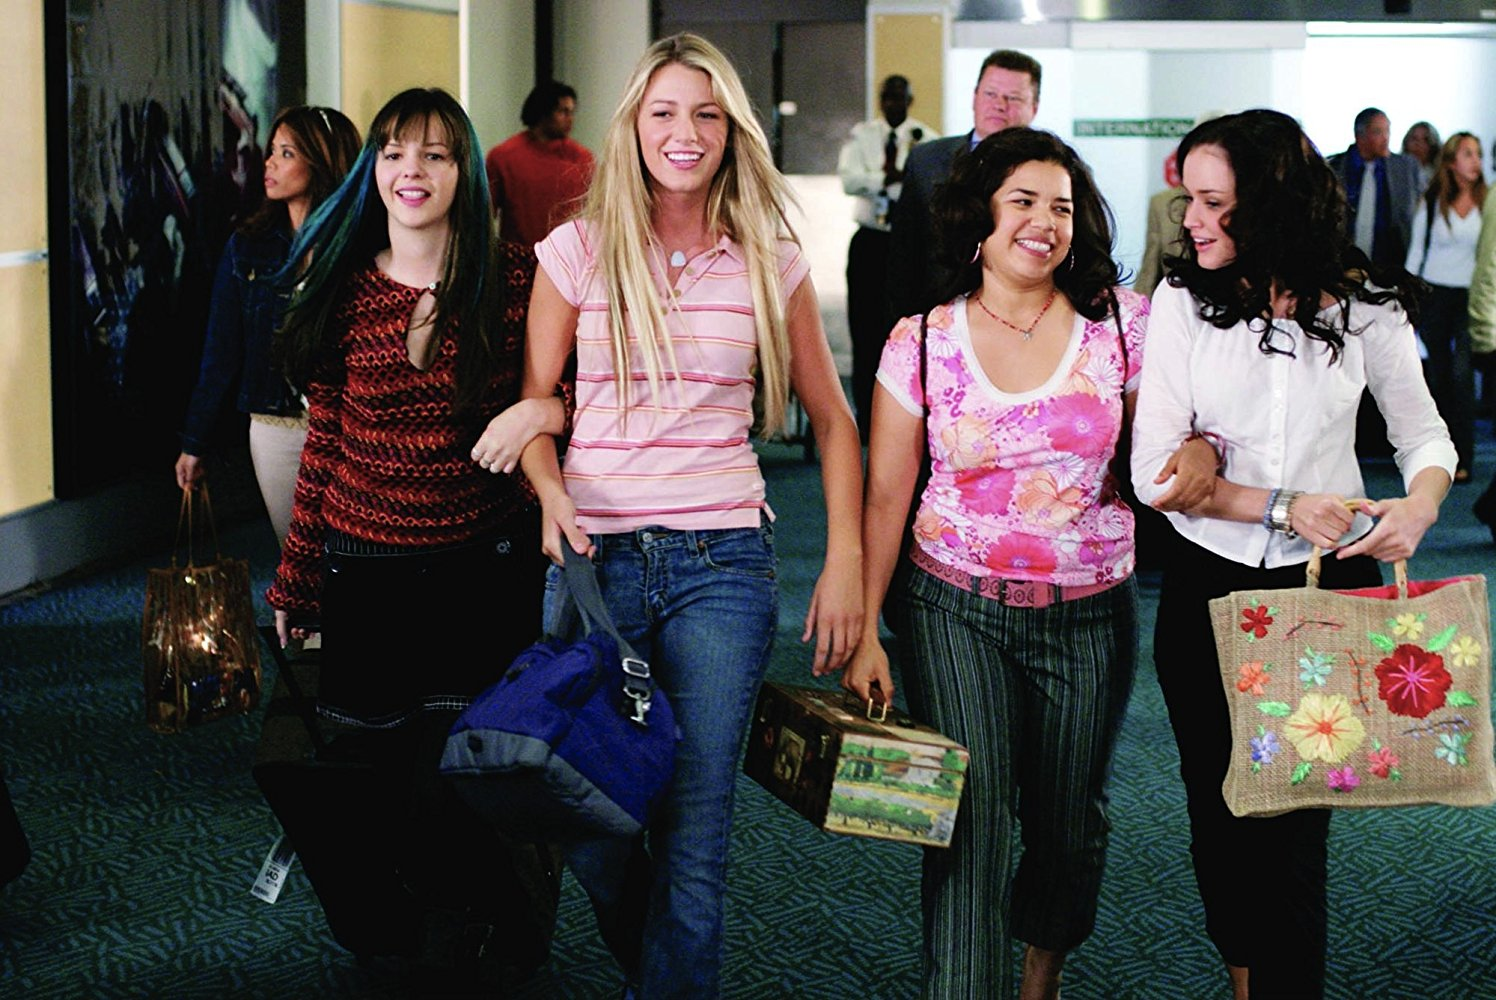 The sisterhood of the traveling pants essay questions